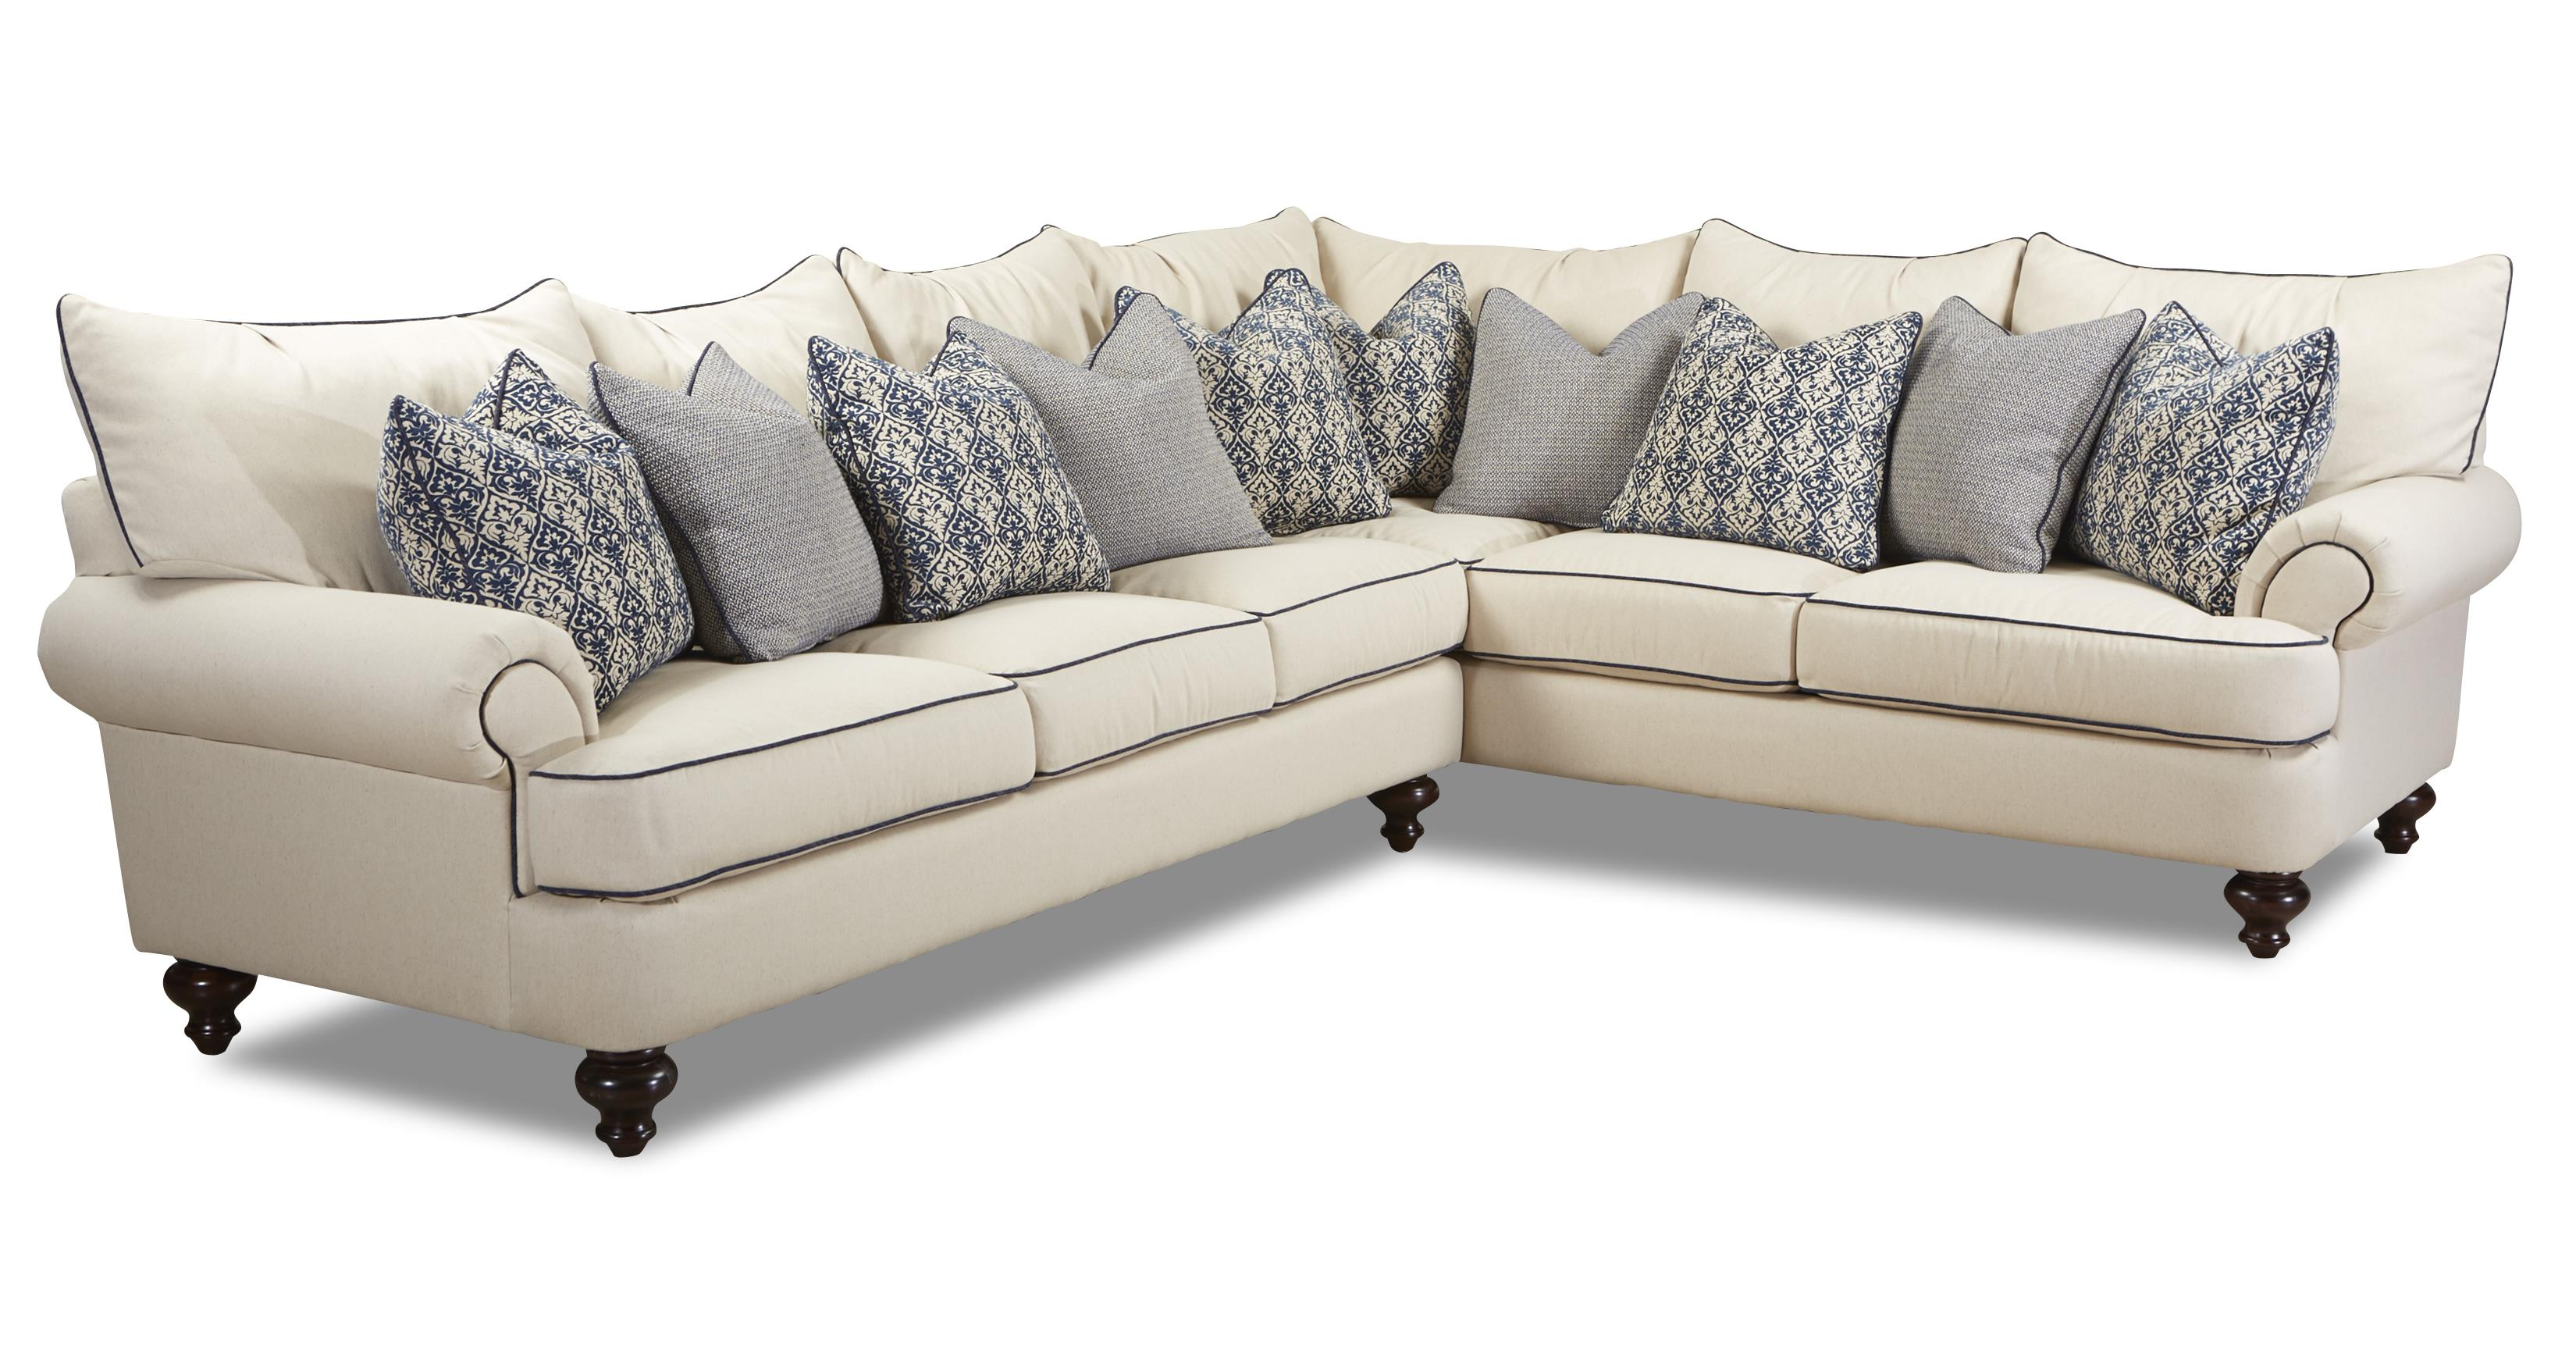 Klaussner Ashworth Shabby Chic Sectional Sofa Olinde 39 S Furniture Sofa Sectional